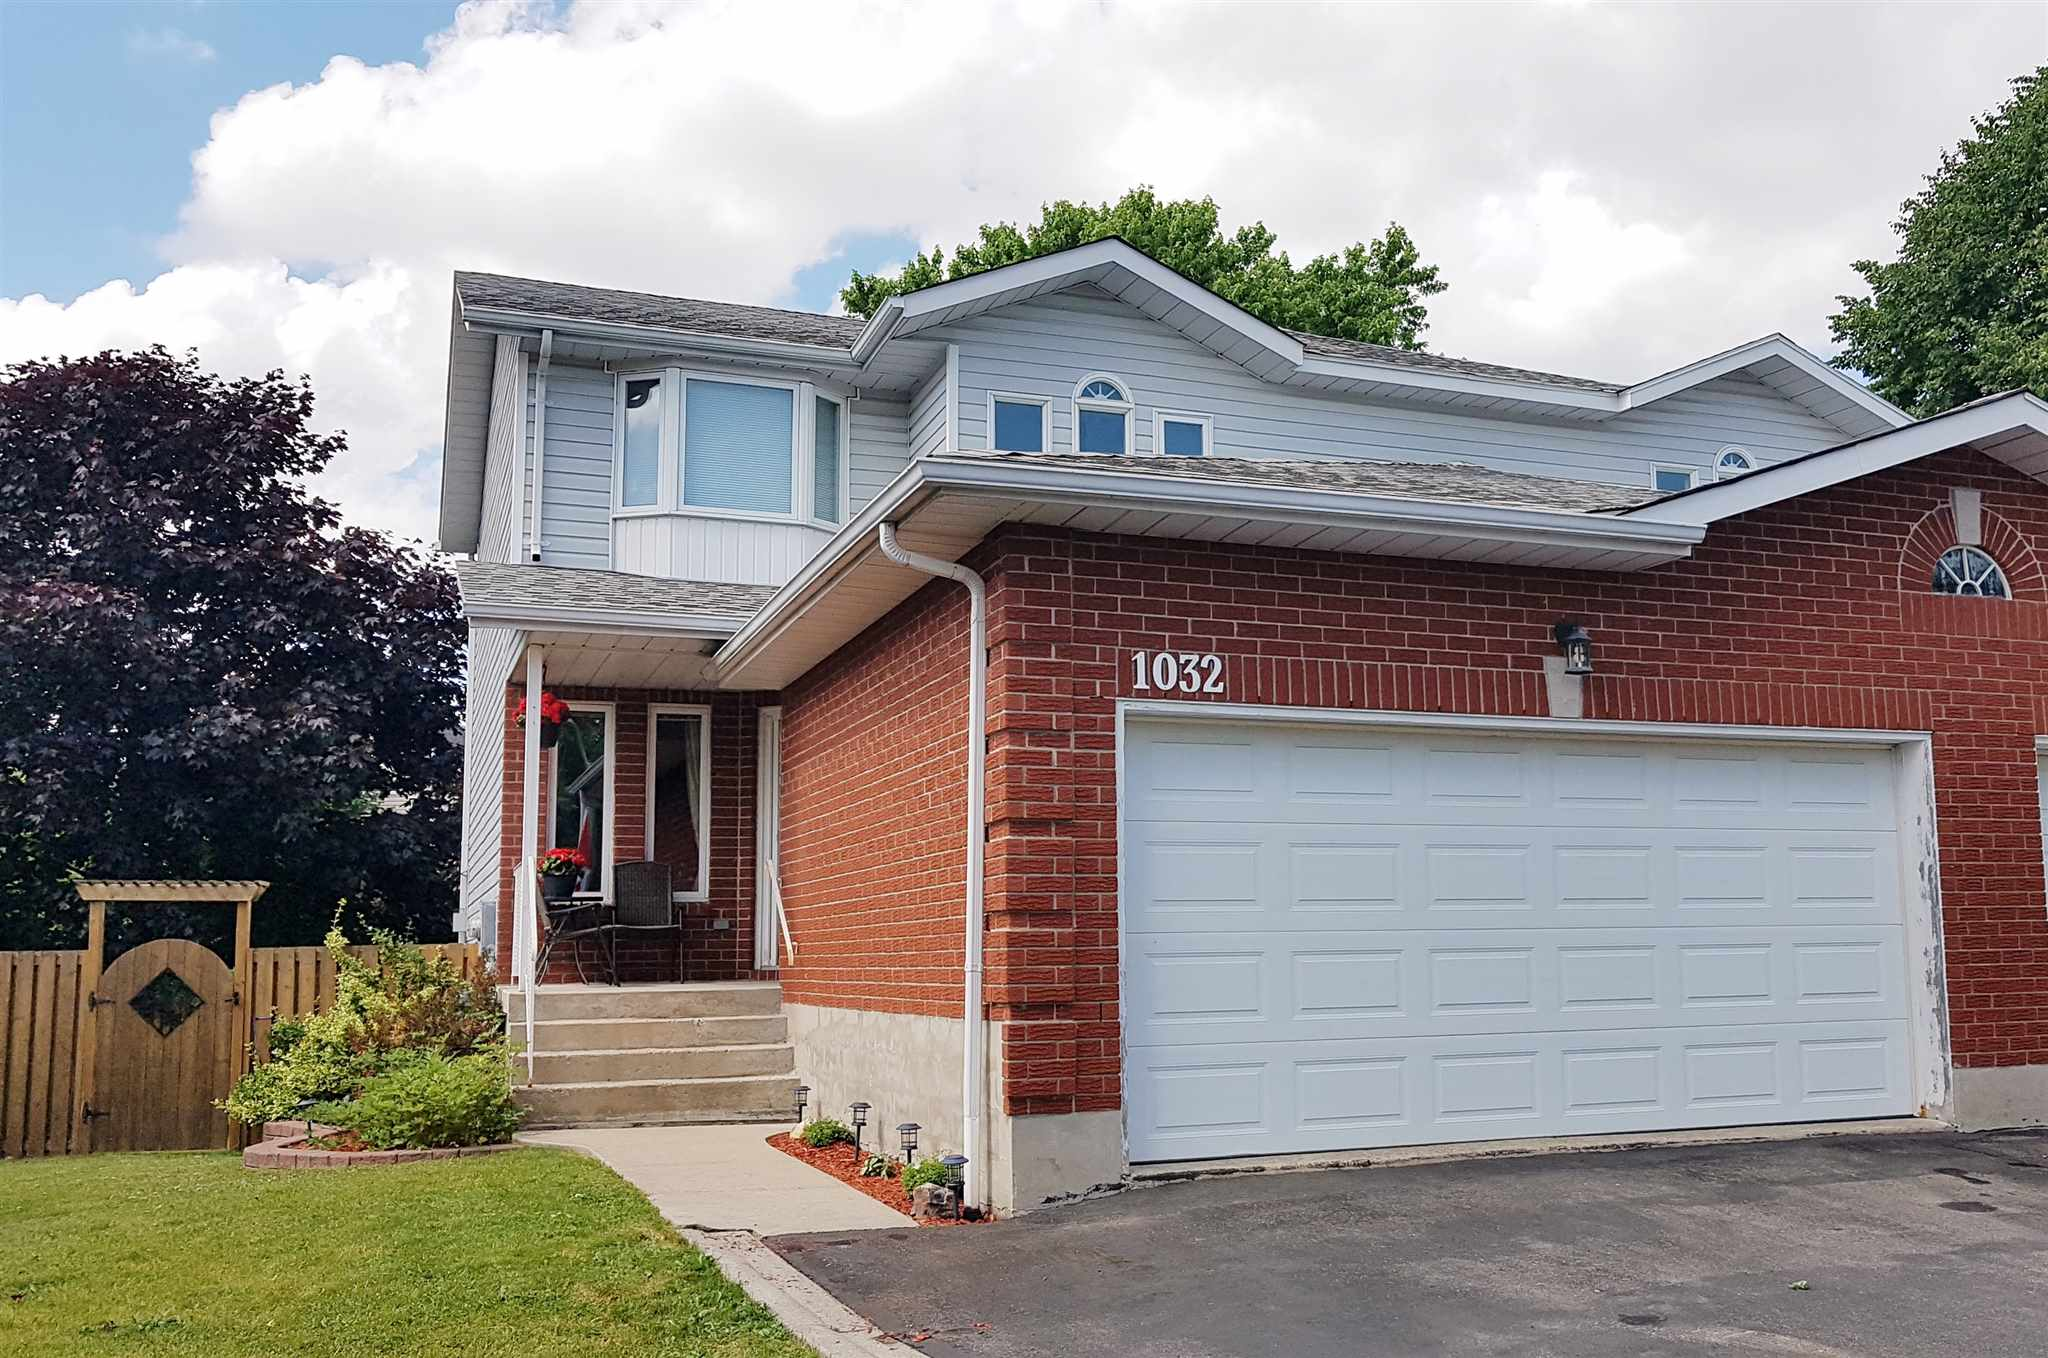 1032 Waterbury Crescent, Kingston Ontario, Canada